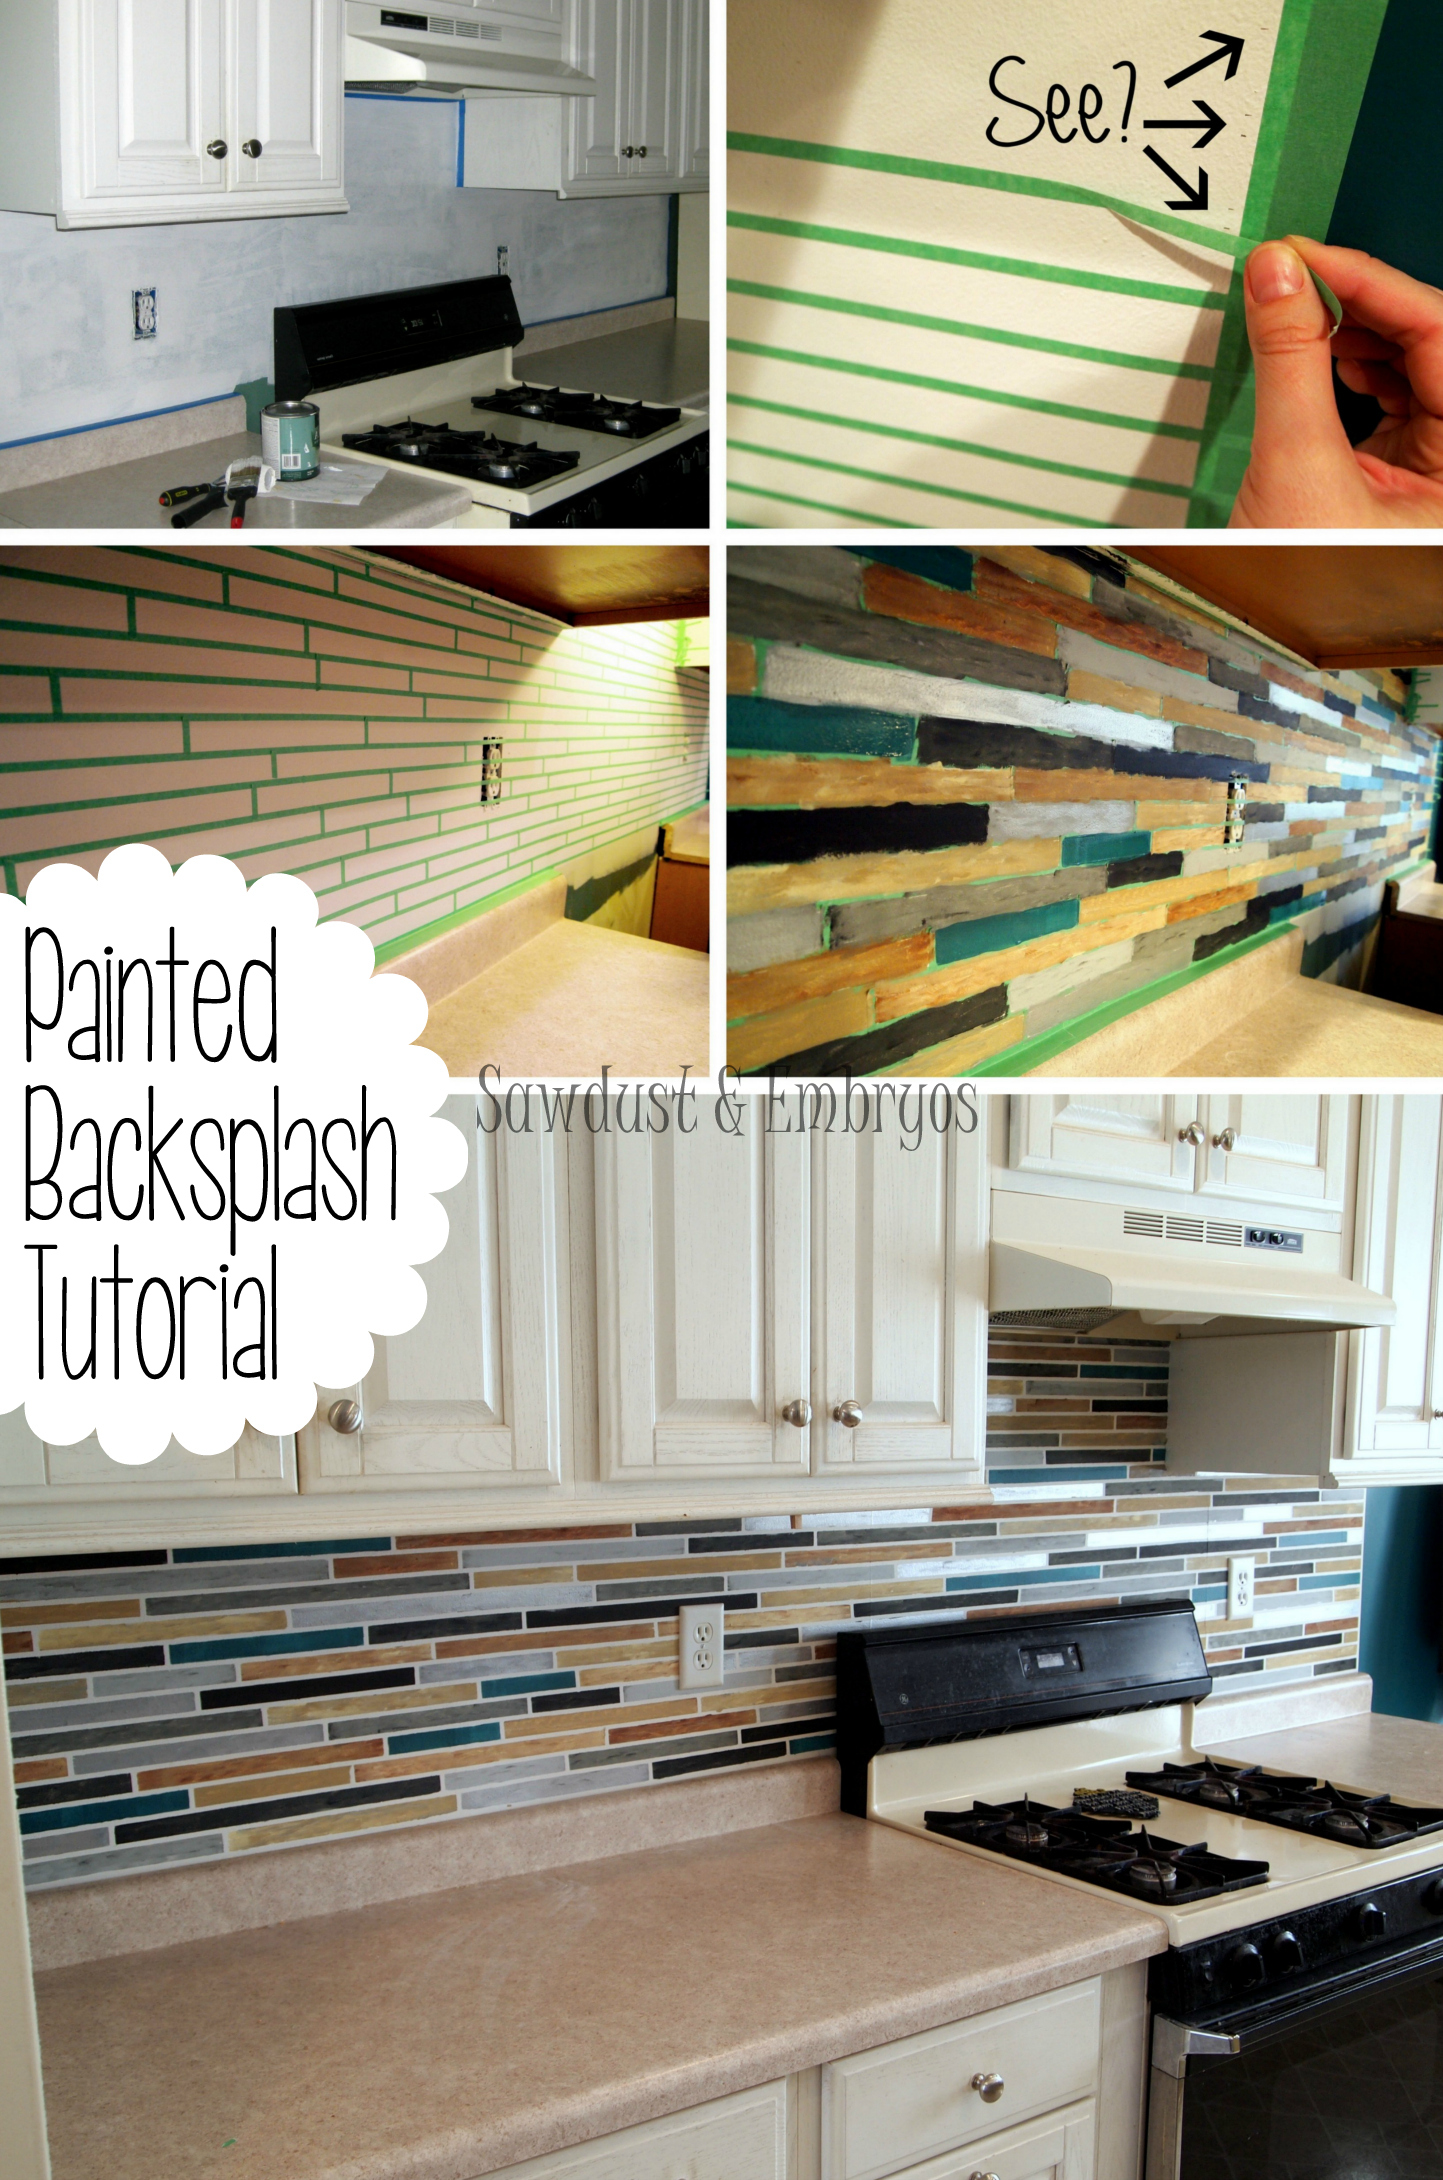 PAINT Your Backsplash To Look Like Custom Tile! {Sawdust U0026 Embryos}